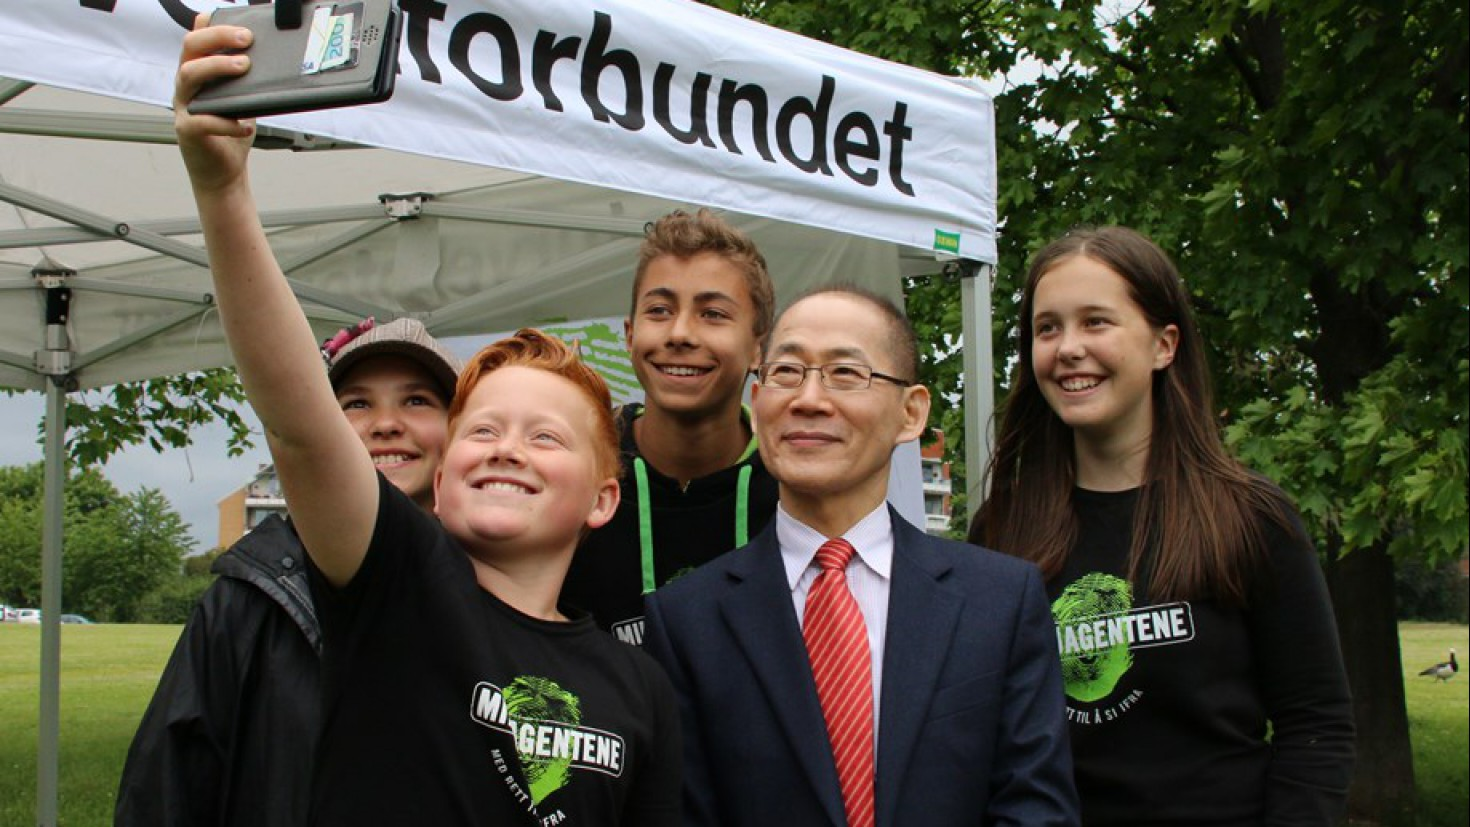 IPCC leader HOESUNG LEE HAD A HIGH LEVEL MEETING WITH THE CHILDRENS CLIMATE PANEL DURING HIS VISIT TO NORWAY in 2016. PHOTO: NORWEGIAN ENVIRONMENT AGENCY